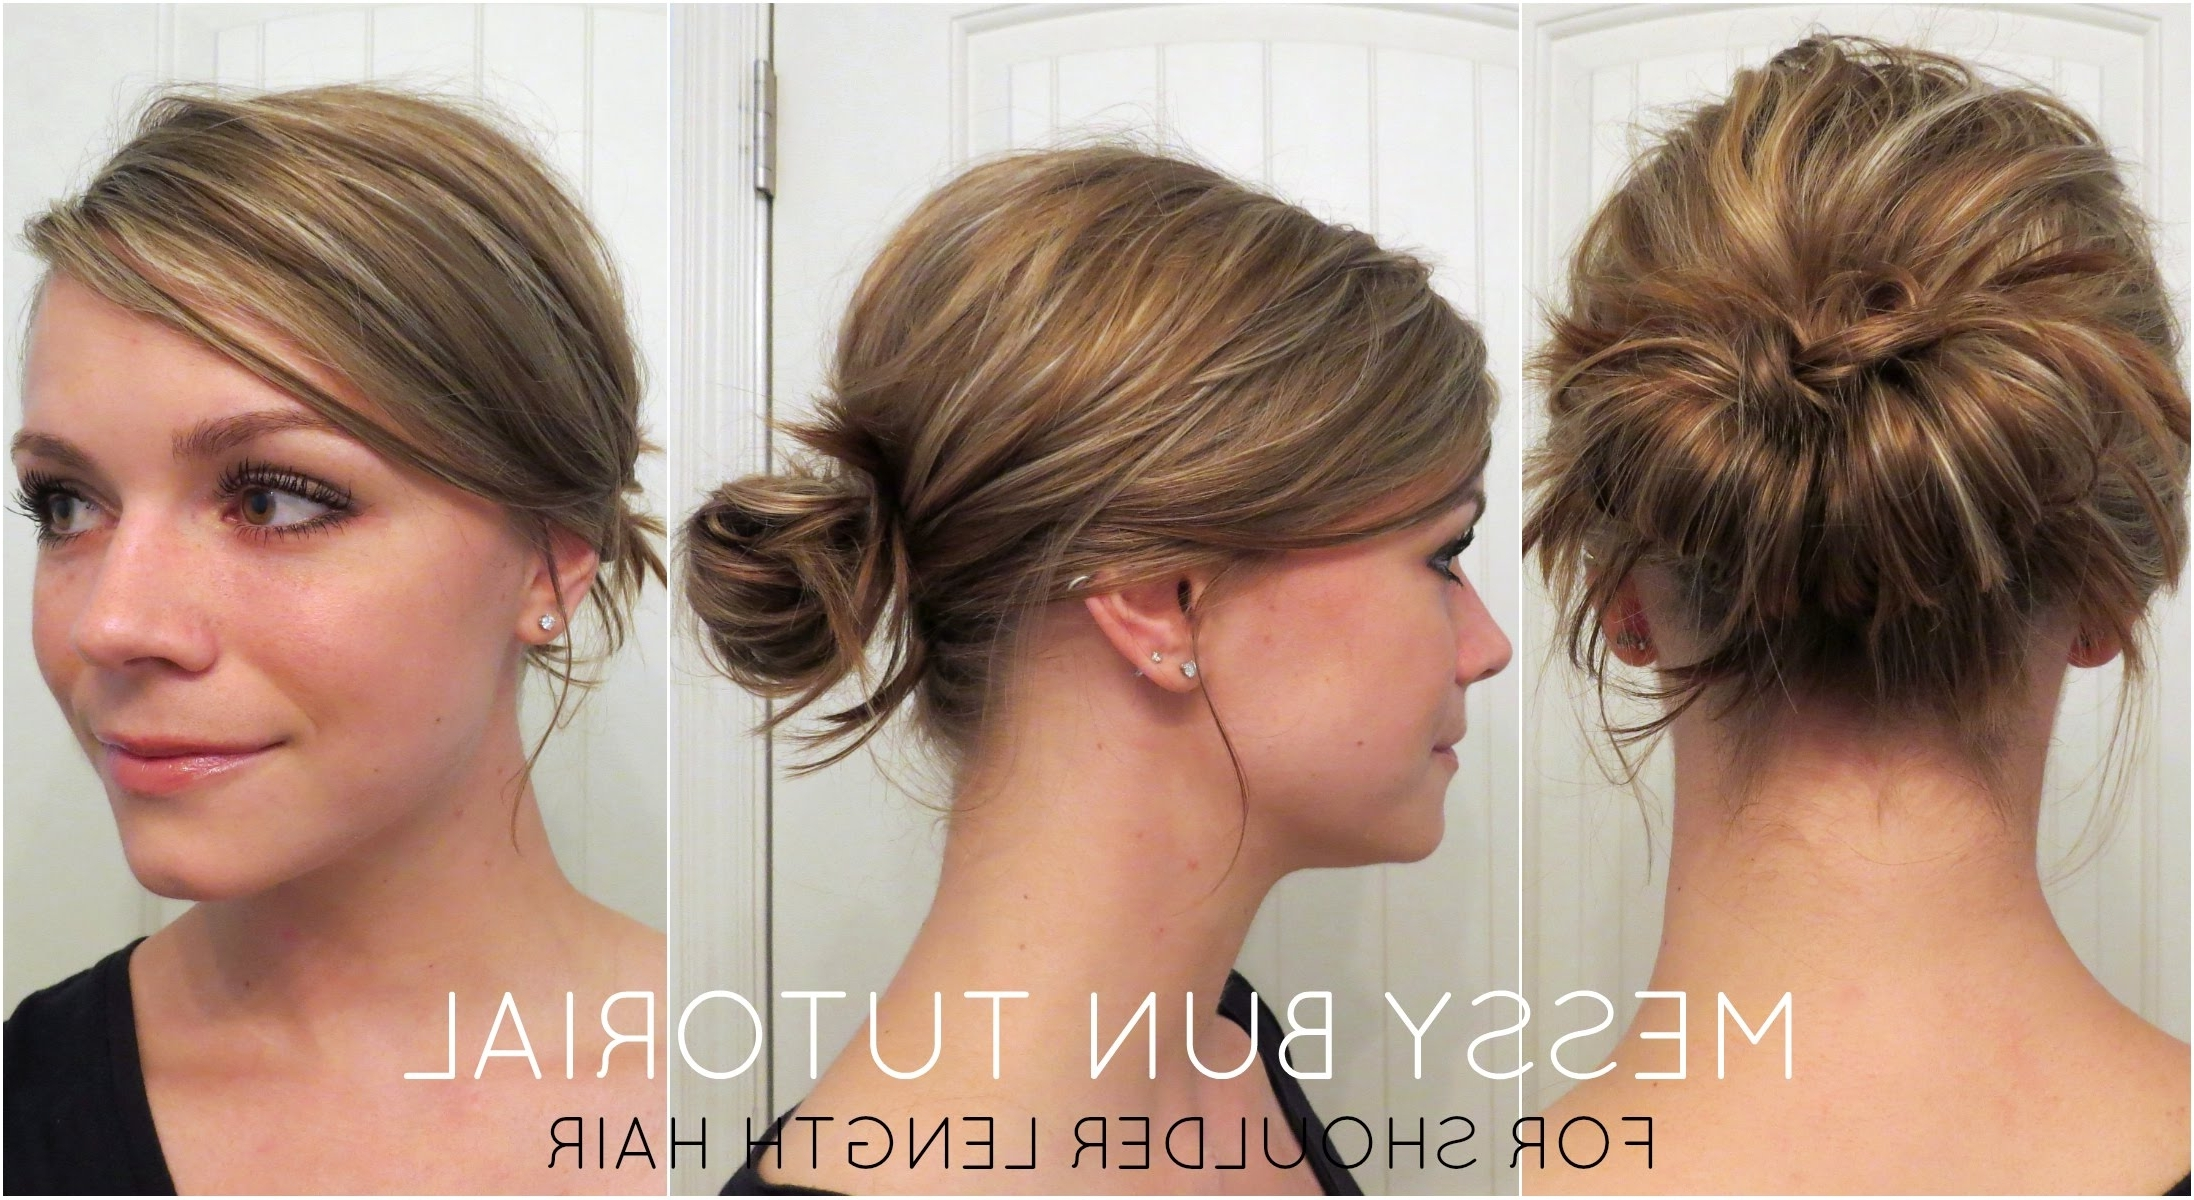 Messy Bun For Shoulder Length Hair – Youtube Pertaining To Shoulder Length Updo Hairstyles (View 14 of 15)